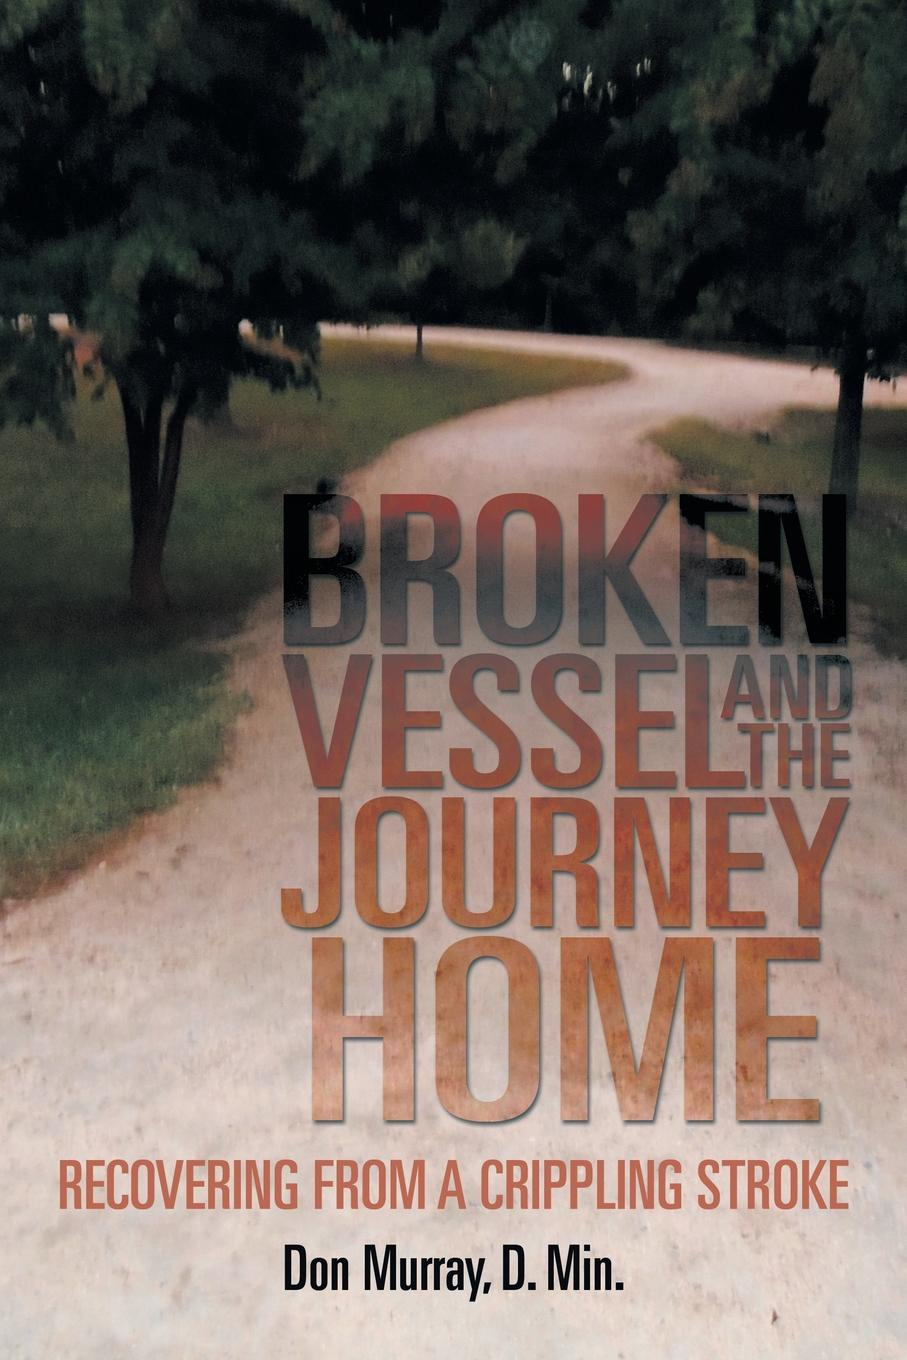 Don Murray Broken Vessel and the Journey Home. Recovering from a Crippling Stroke a journey home